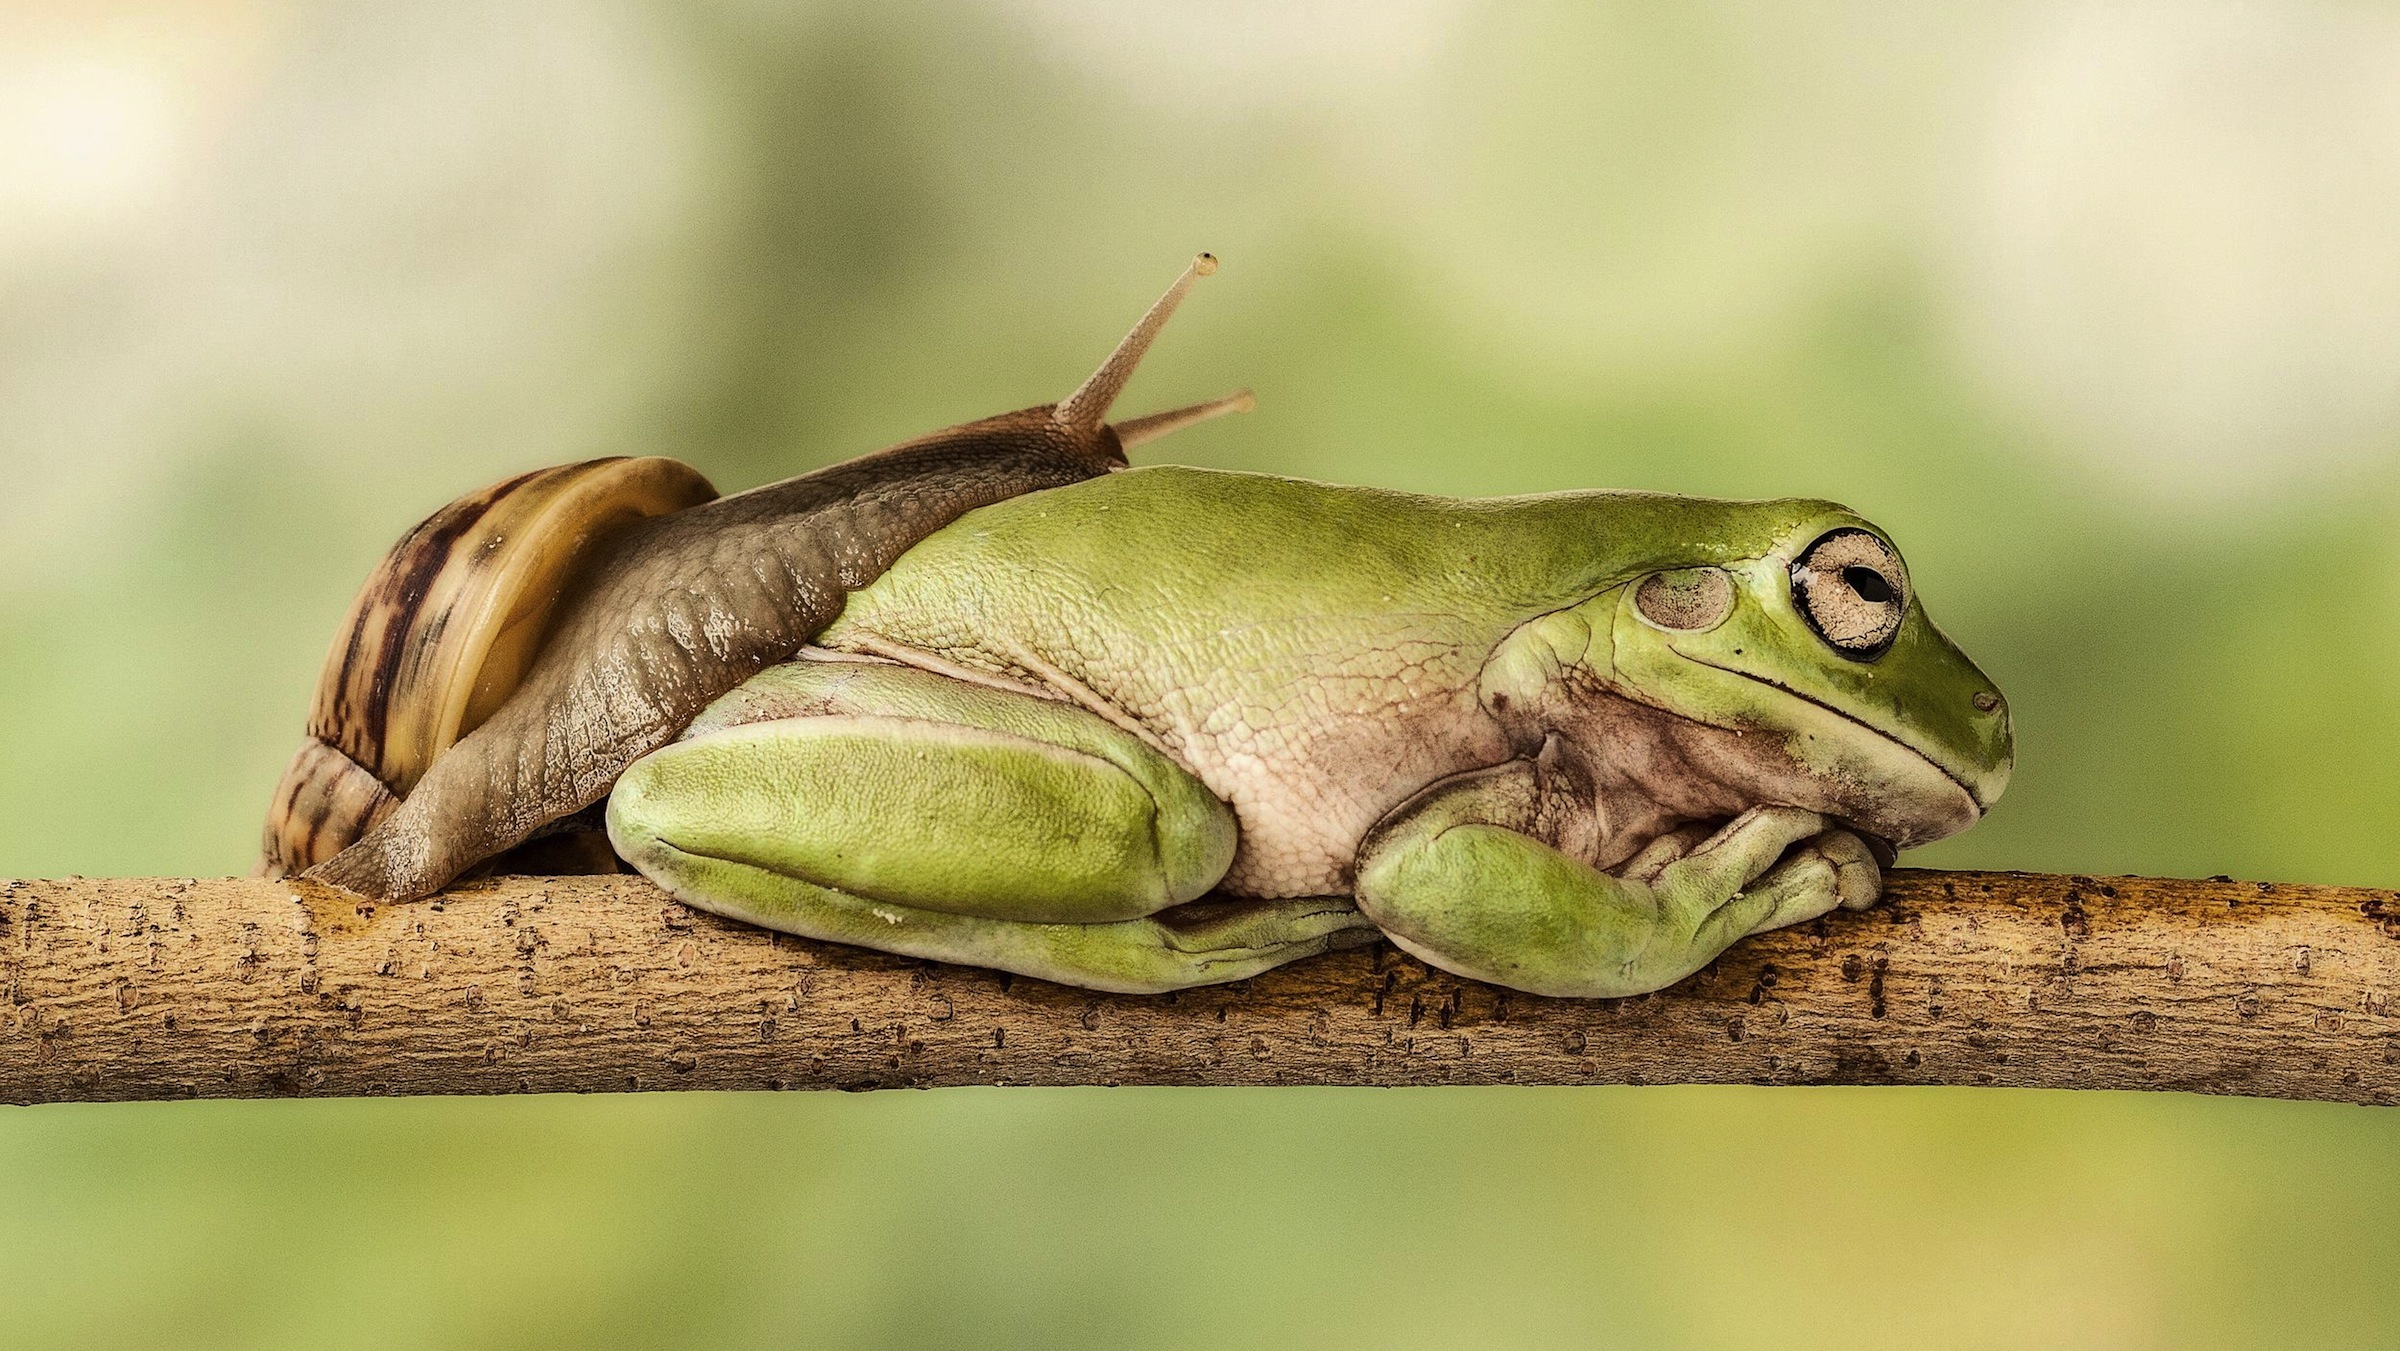 """Snail Enjoys Slowest Game Of Leapfrog Ever This snail enjoys a long game of leapfrog as it takes eight minutes to calmly climb over a croaker before reaching its destination.  The frog was enjoying an afternoon nap, minding its own business high up in a branch, when the snail decided to interrupt its snooze.  Approaching the snoozing amphibian the quick-thinking snail clearly decided that the only way to reach its destination was to slide over the frog, which took it eight long minutes.  Photographer Lessy Sebastian, from Jakarta, Indonesia, captured the rare moment in his front garden.  A number of green tree frogs live in the pond underneath the branch in question and often jump up to enjoy the shade while they sleep.  The 49-year-old said: """"I bought green tree frogs from a reptile store and they love playing in the pond outside my house.  """"When I went outside I noticed one of the frogs was sleeping on a branch above the pond and a snail was moving very slowly nearby.  """"I couldn't believe it when the snail started to climb up onto the frog, and it was more surprising when the frog stayed still while it slept.  """"I immediately grabbed my camera and the snail was on his back and snapped away until the snail travelled down the frog.""""  The father-of-two was thrilled with the results and is pleased when people smile at his photographs.  He added: """"When I saw the photographs on my computer I was delighted with the end result - the pictures remind me of a double-decker bus.""""  """"It looks like the snail and frog are good friends and everyone that has seen them loves the photographs.""""  MUST CREDIT PHOTOS BY: Lessy Sebastian / Solent News / Rex Features  For more information visit http://www.rexfeatures.com/stacklink/KHQATJGIT (Rex Features via AP Images)"""